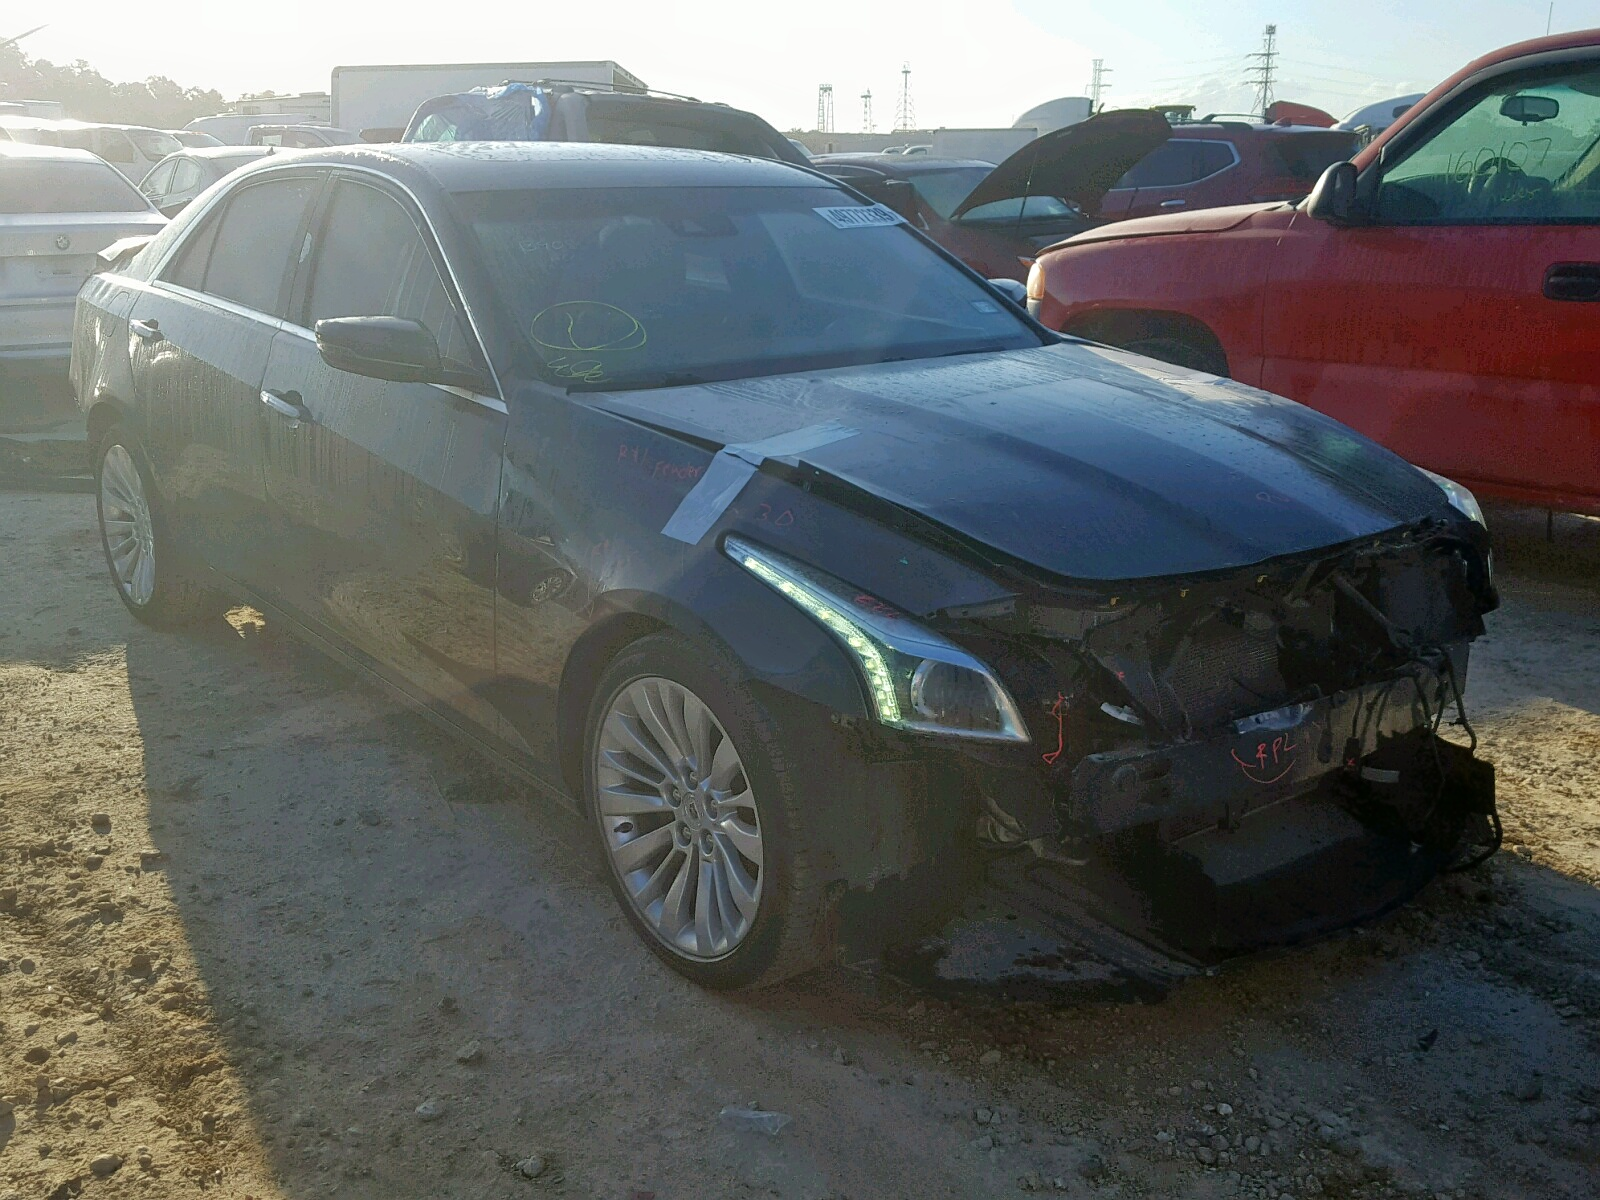 2014 Cadillac Cts Luxury 2.0L Left View